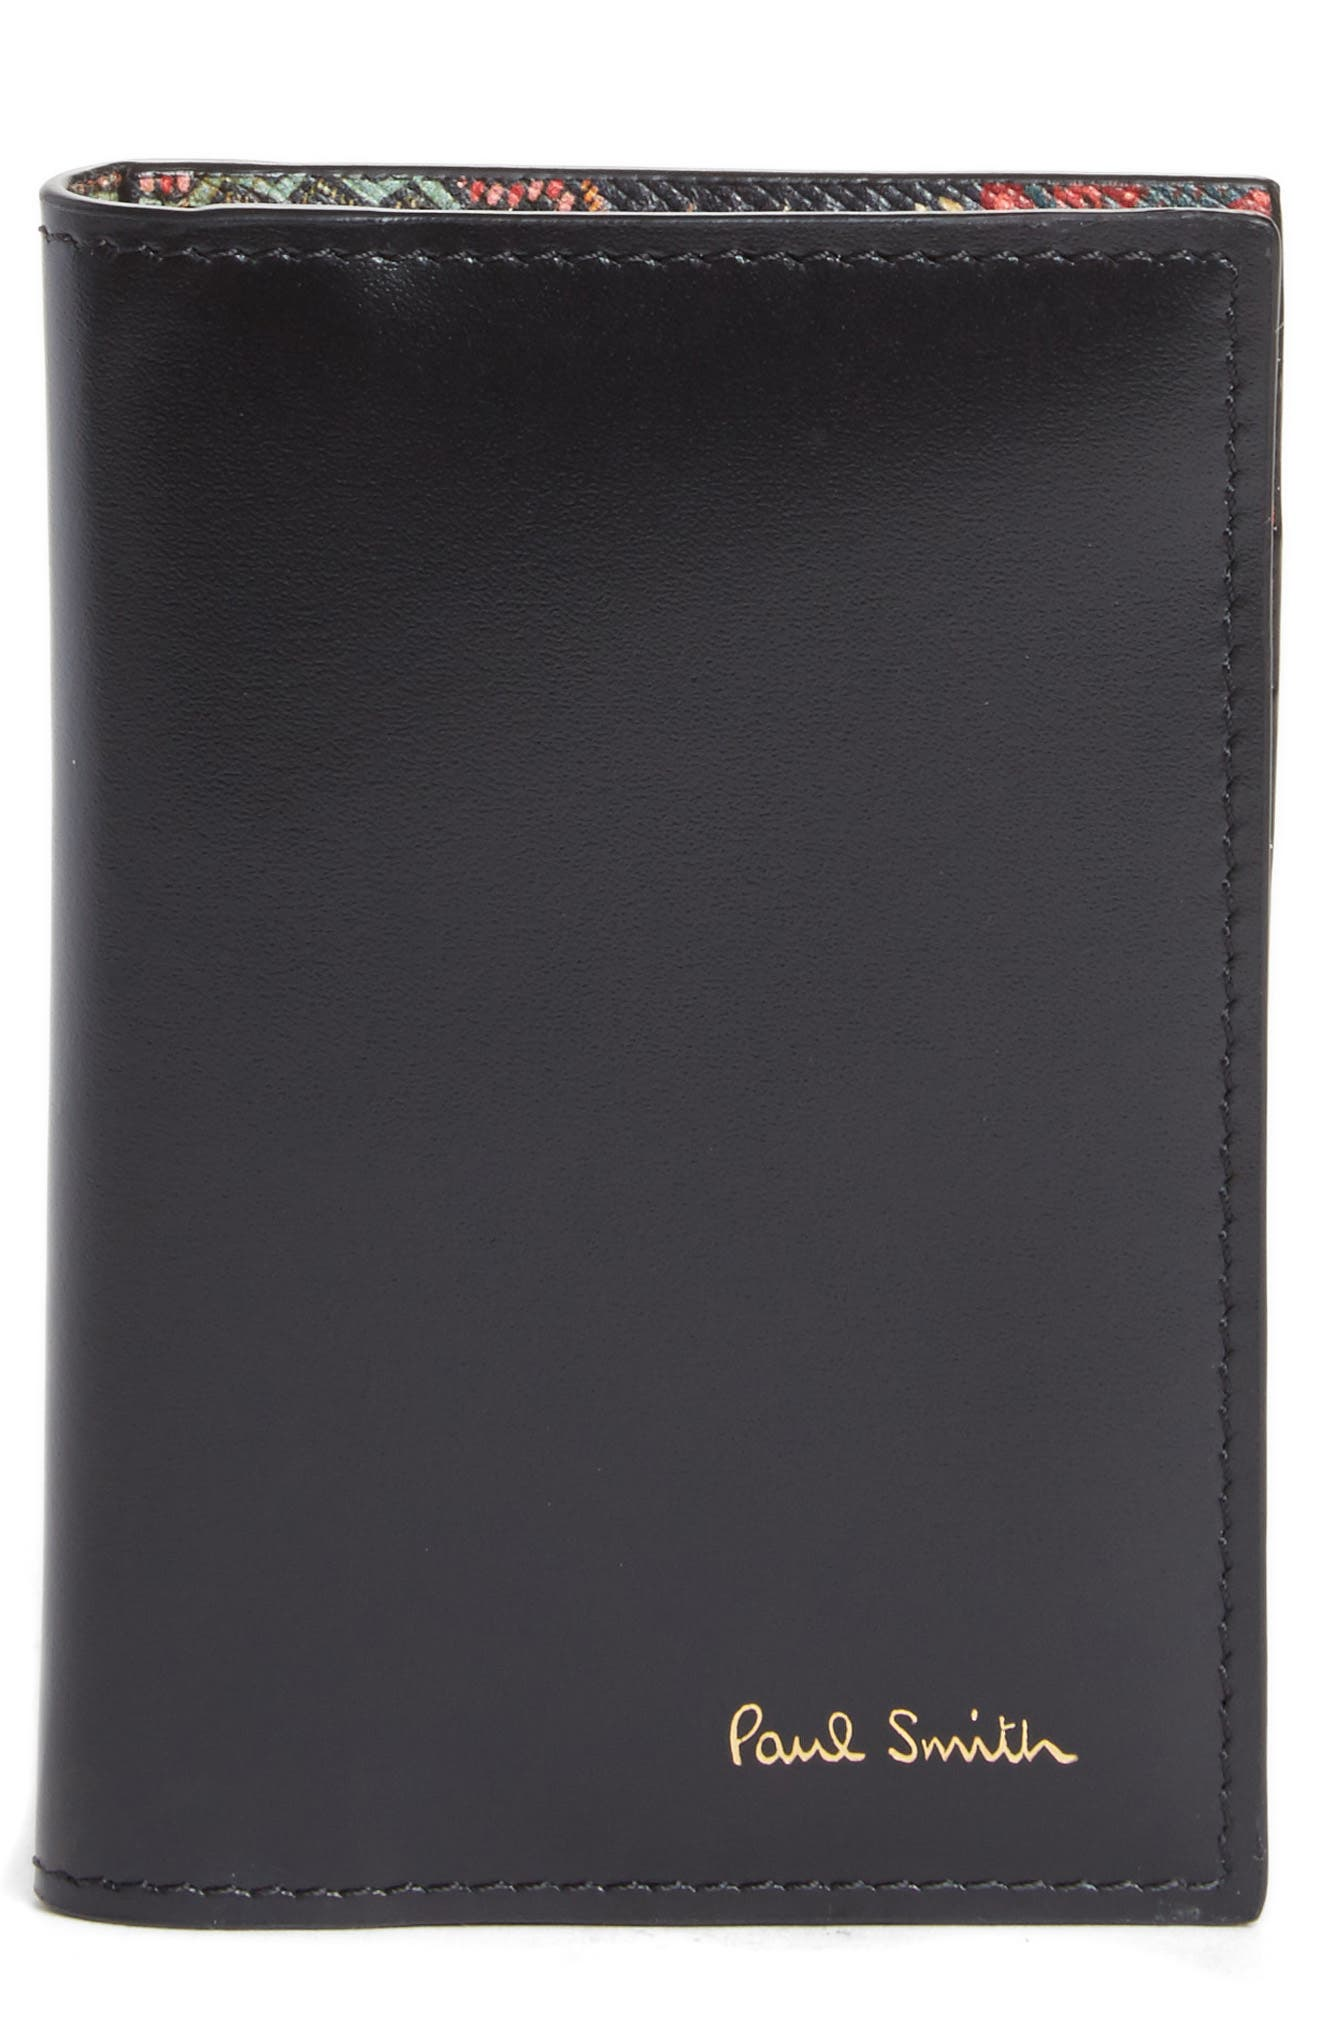 Paul Smith Horniman Print Leather Wallet